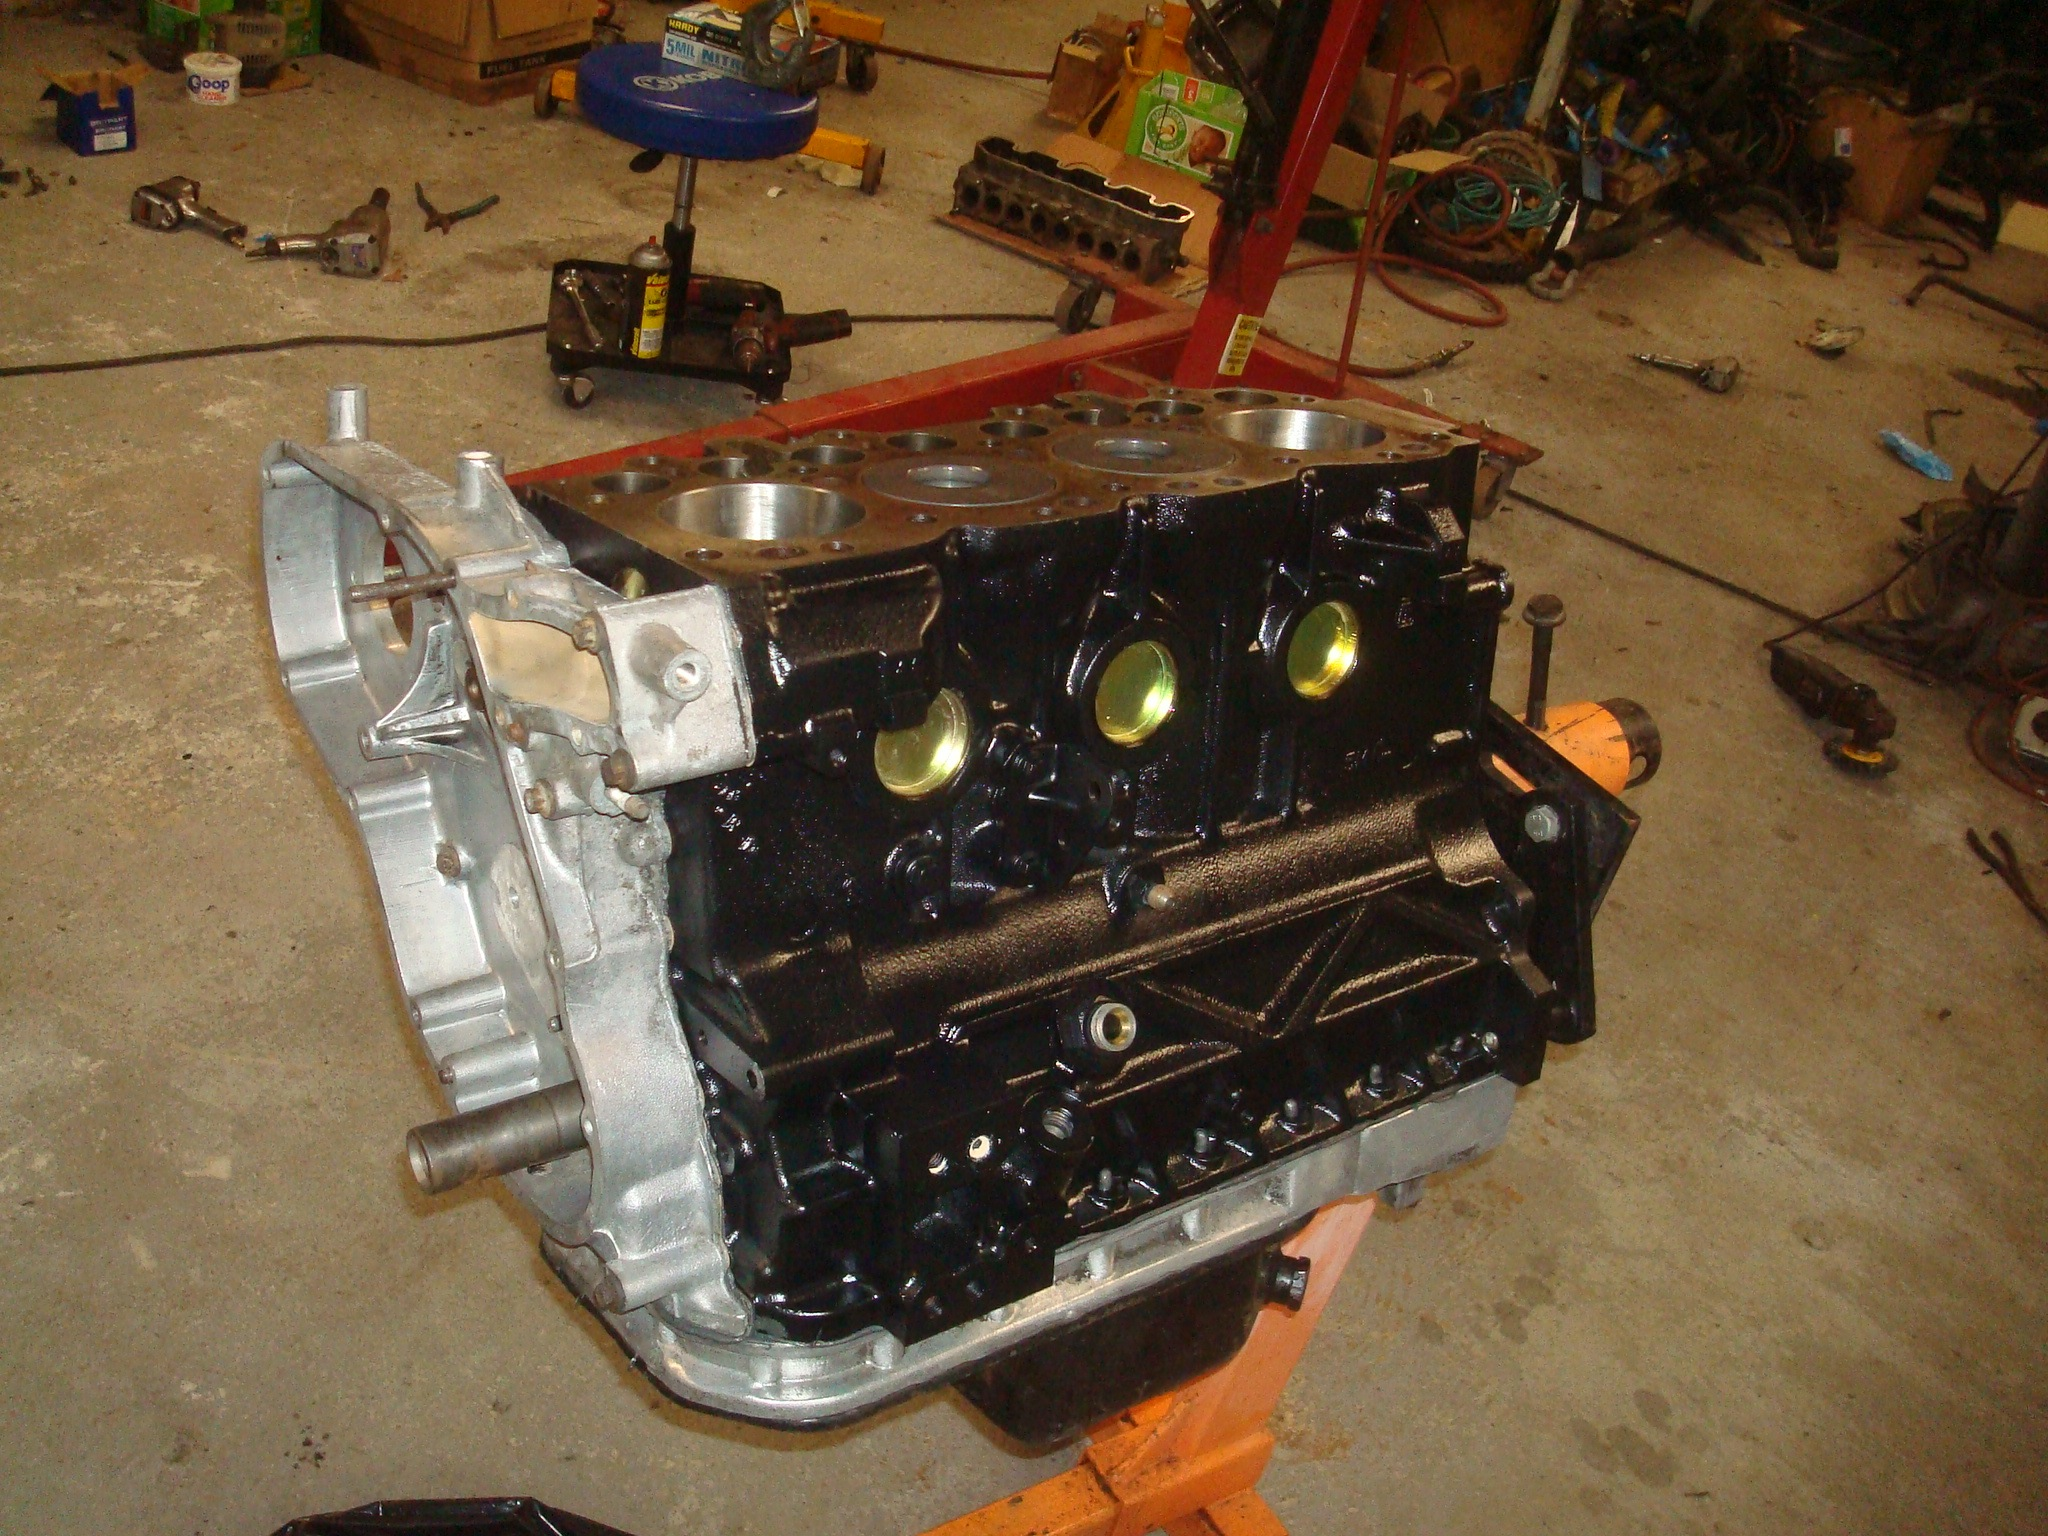 Tdi Turbo Diesel Land Rover Engine Conversion Swap Kits